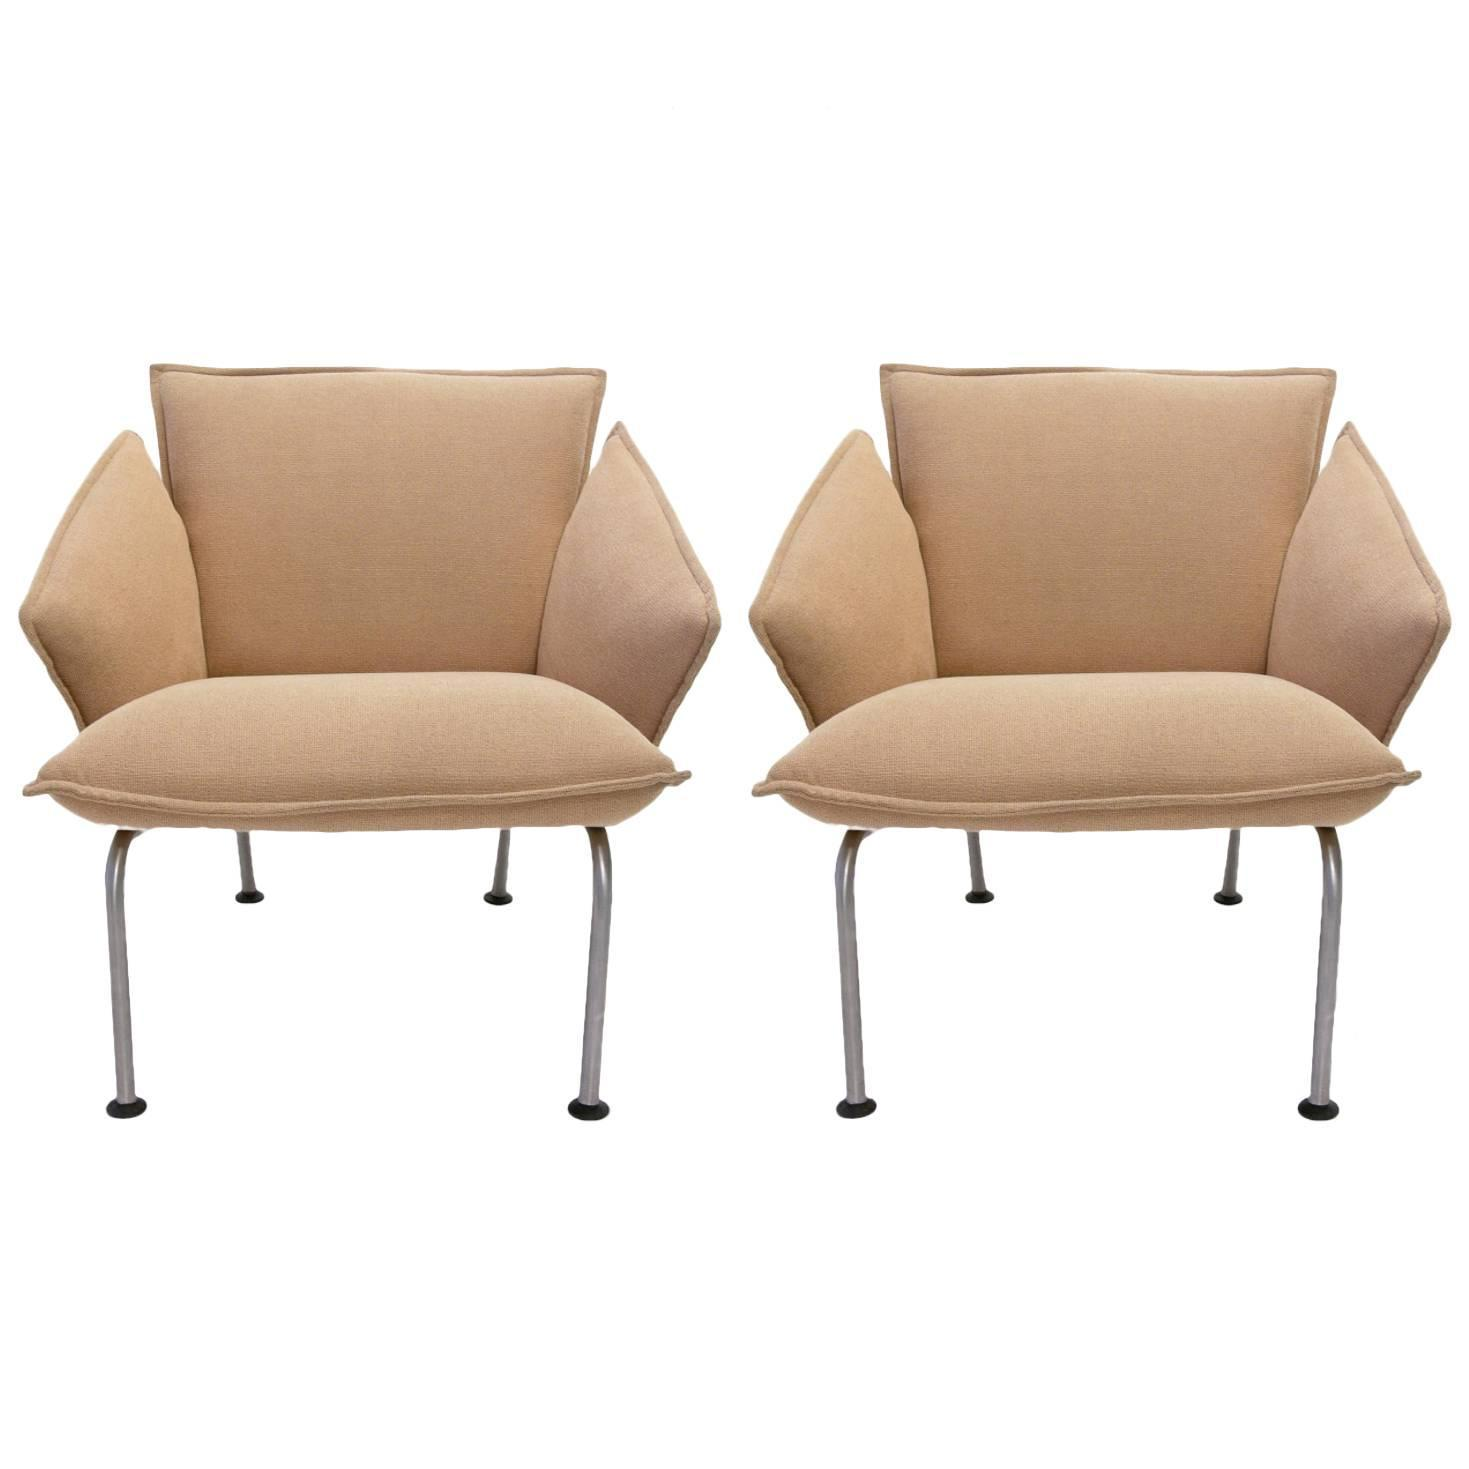 "Pair of ""Vicolounge"" Chairs by Vico Magistretti for Fritz Hansen"